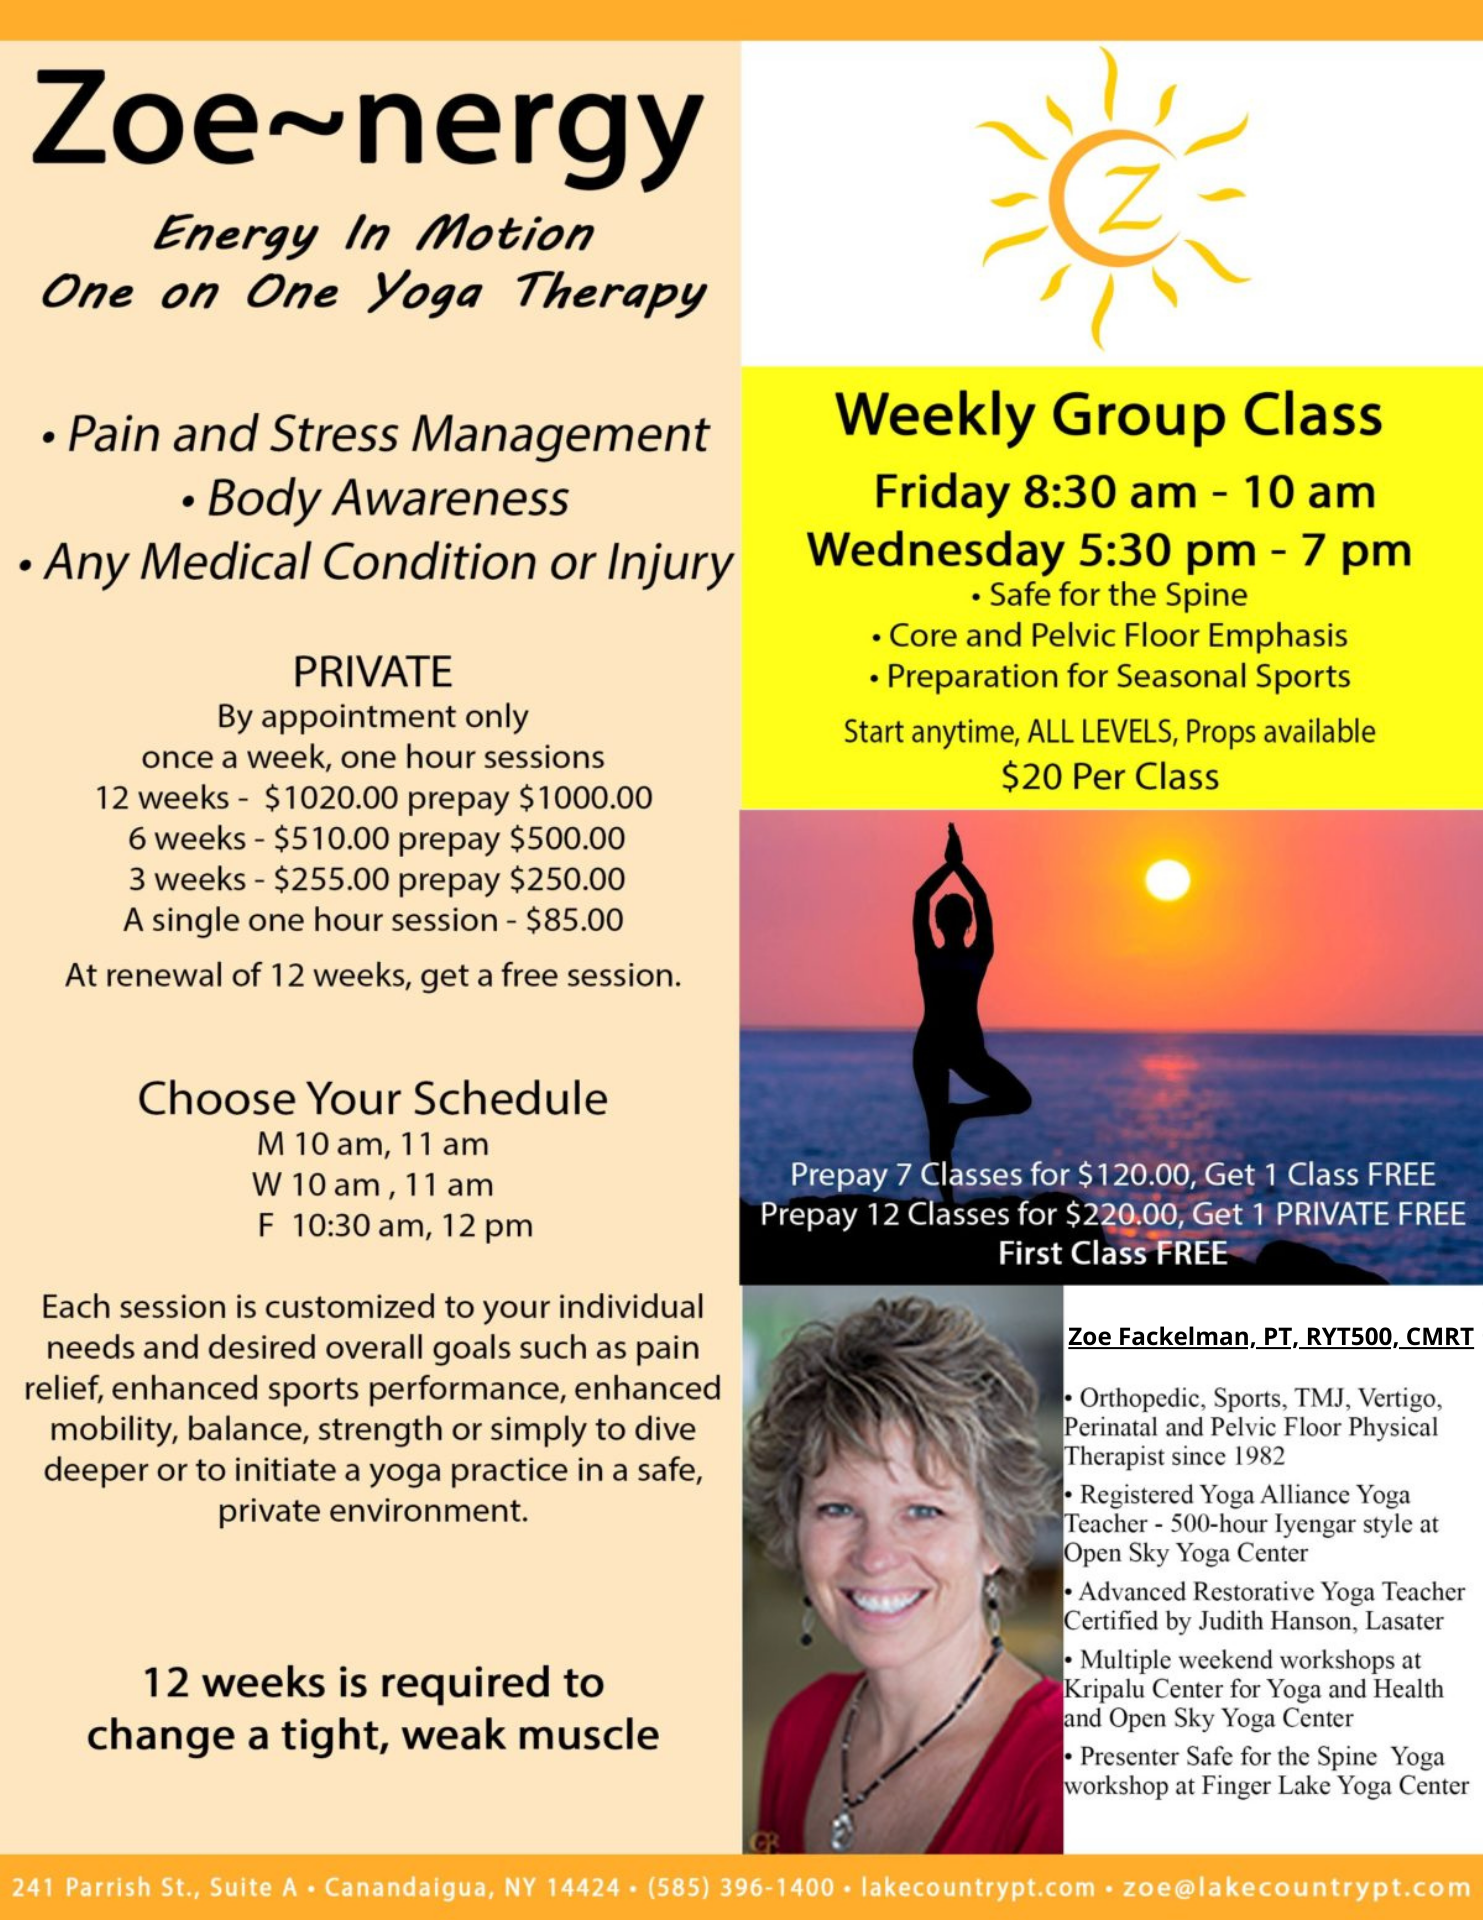 Zoe Nergy Private Yoga Instruction In Canandaigua